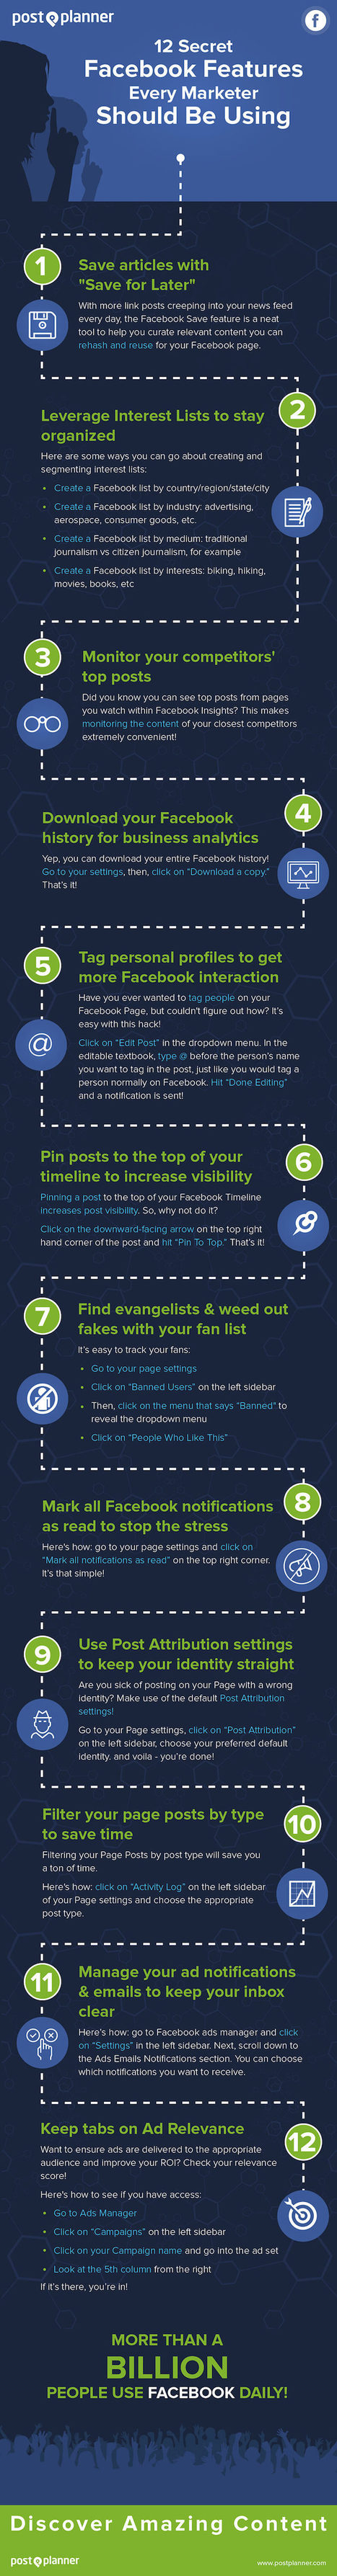 12 Secret Facebook Features Every Marketer Should Be Using #Infographic | MarketingHits | Scoop.it